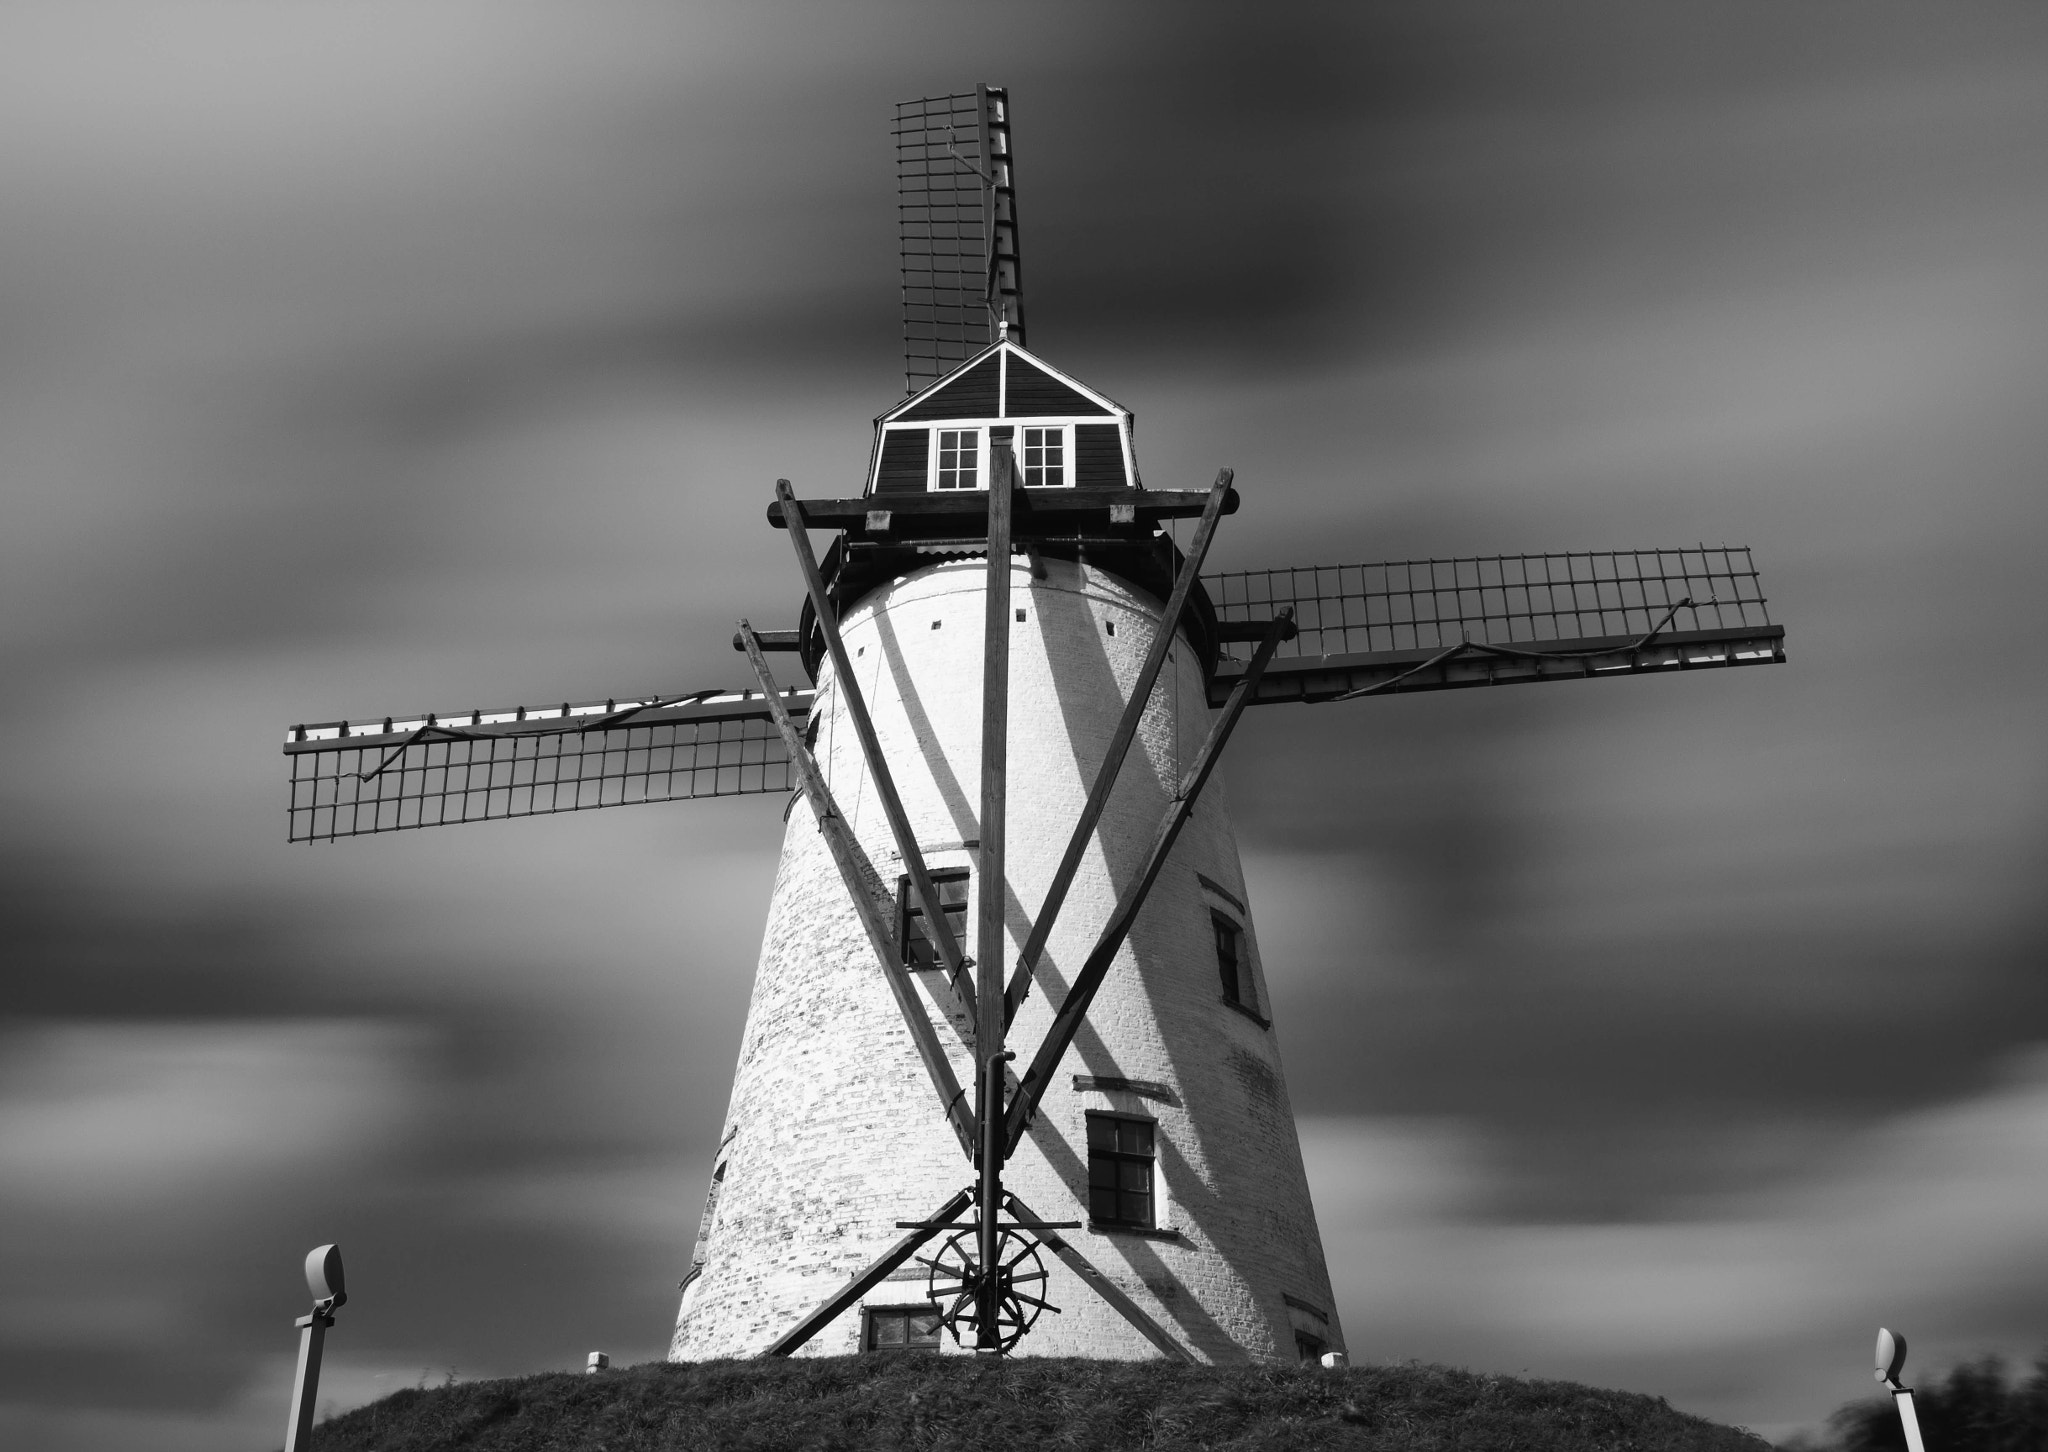 Photograph MILL DAMME by Johan Vanreybrouck on 500px